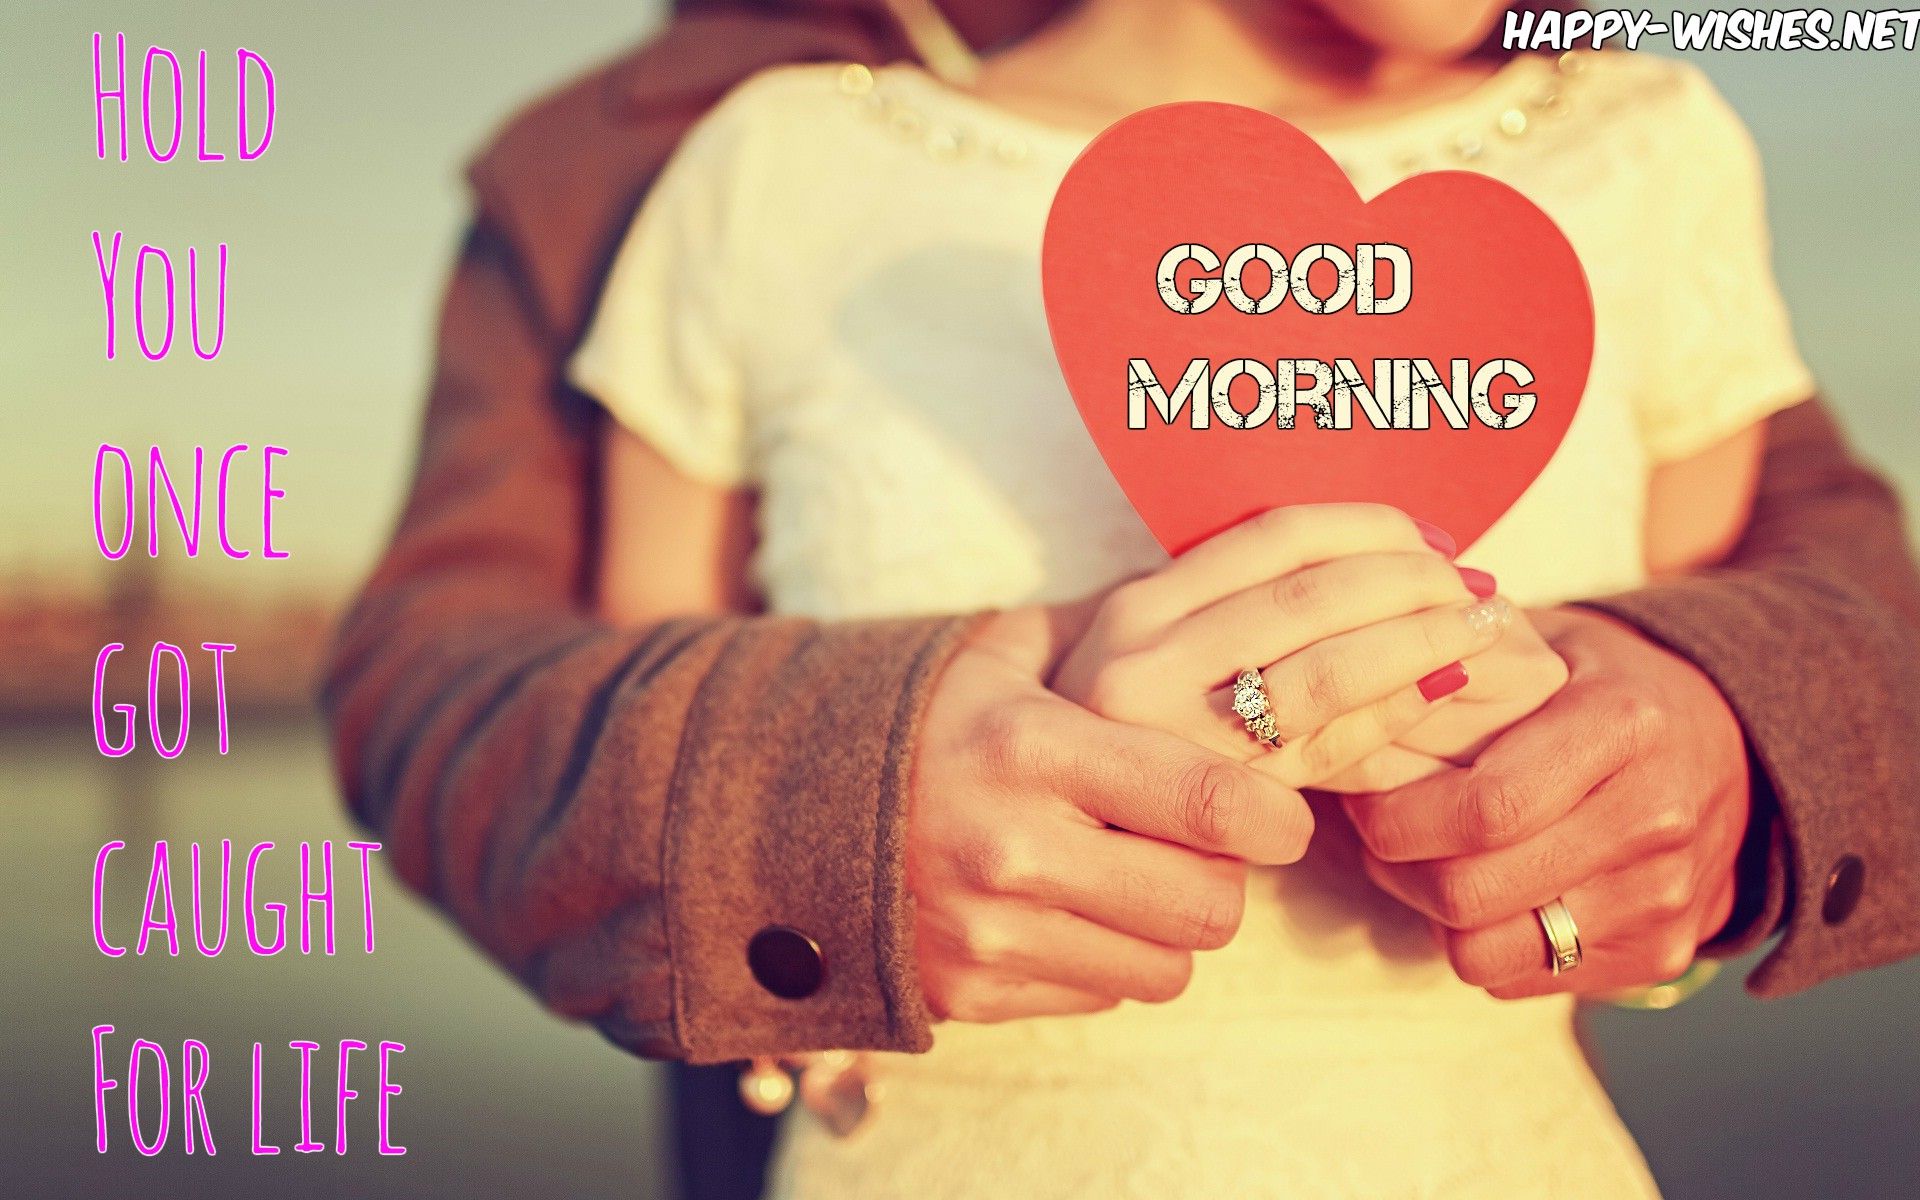 couple love good morning wishes